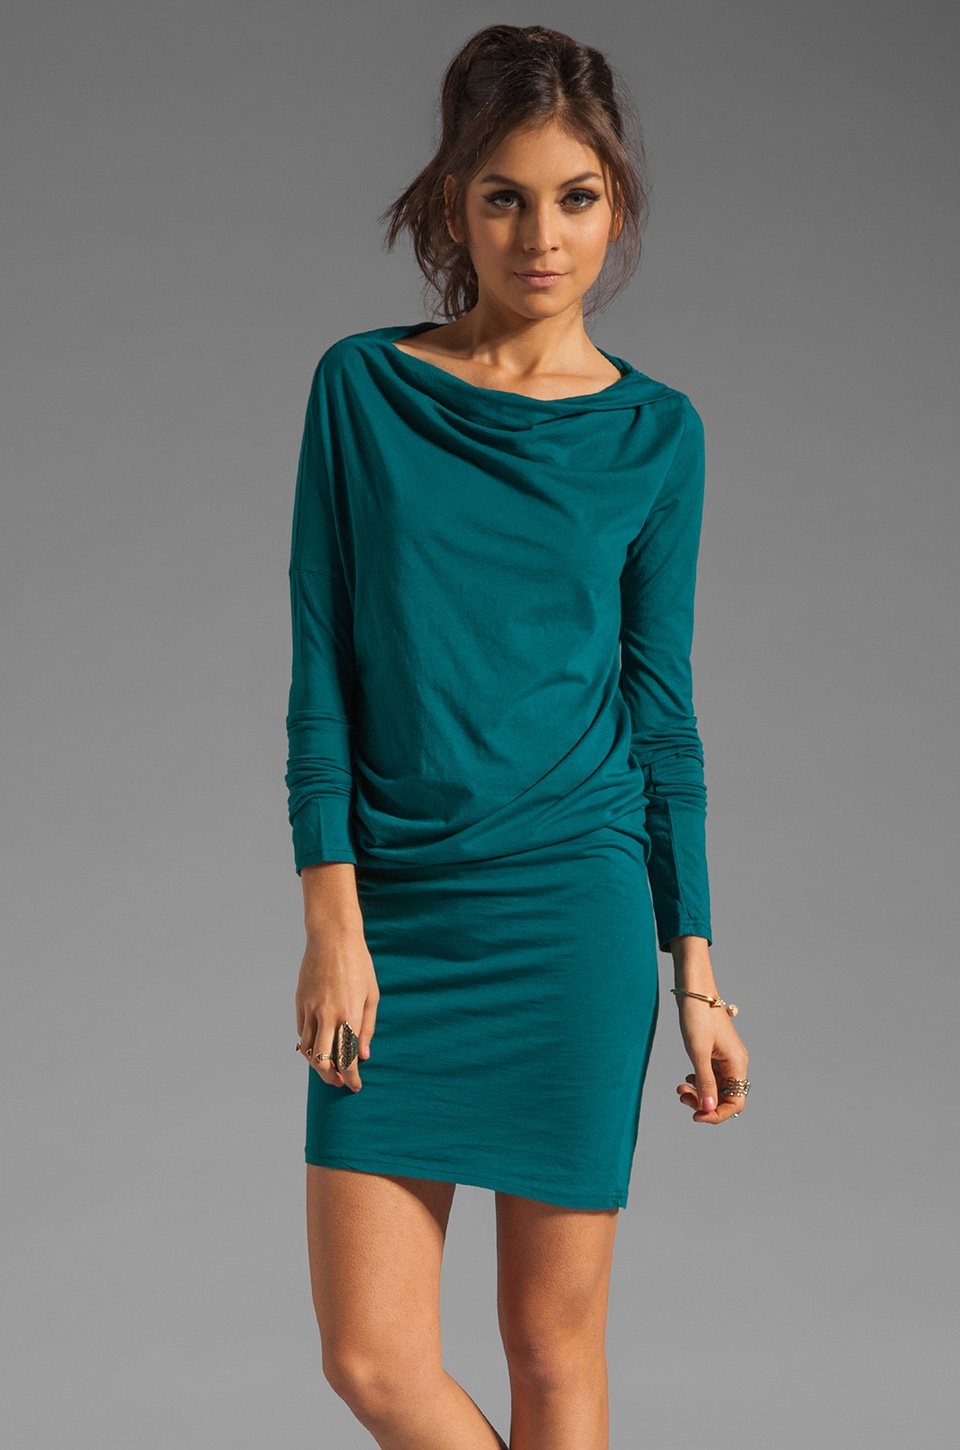 Bobi Long Sleeve Modal Jersey Dress in Bluegreen